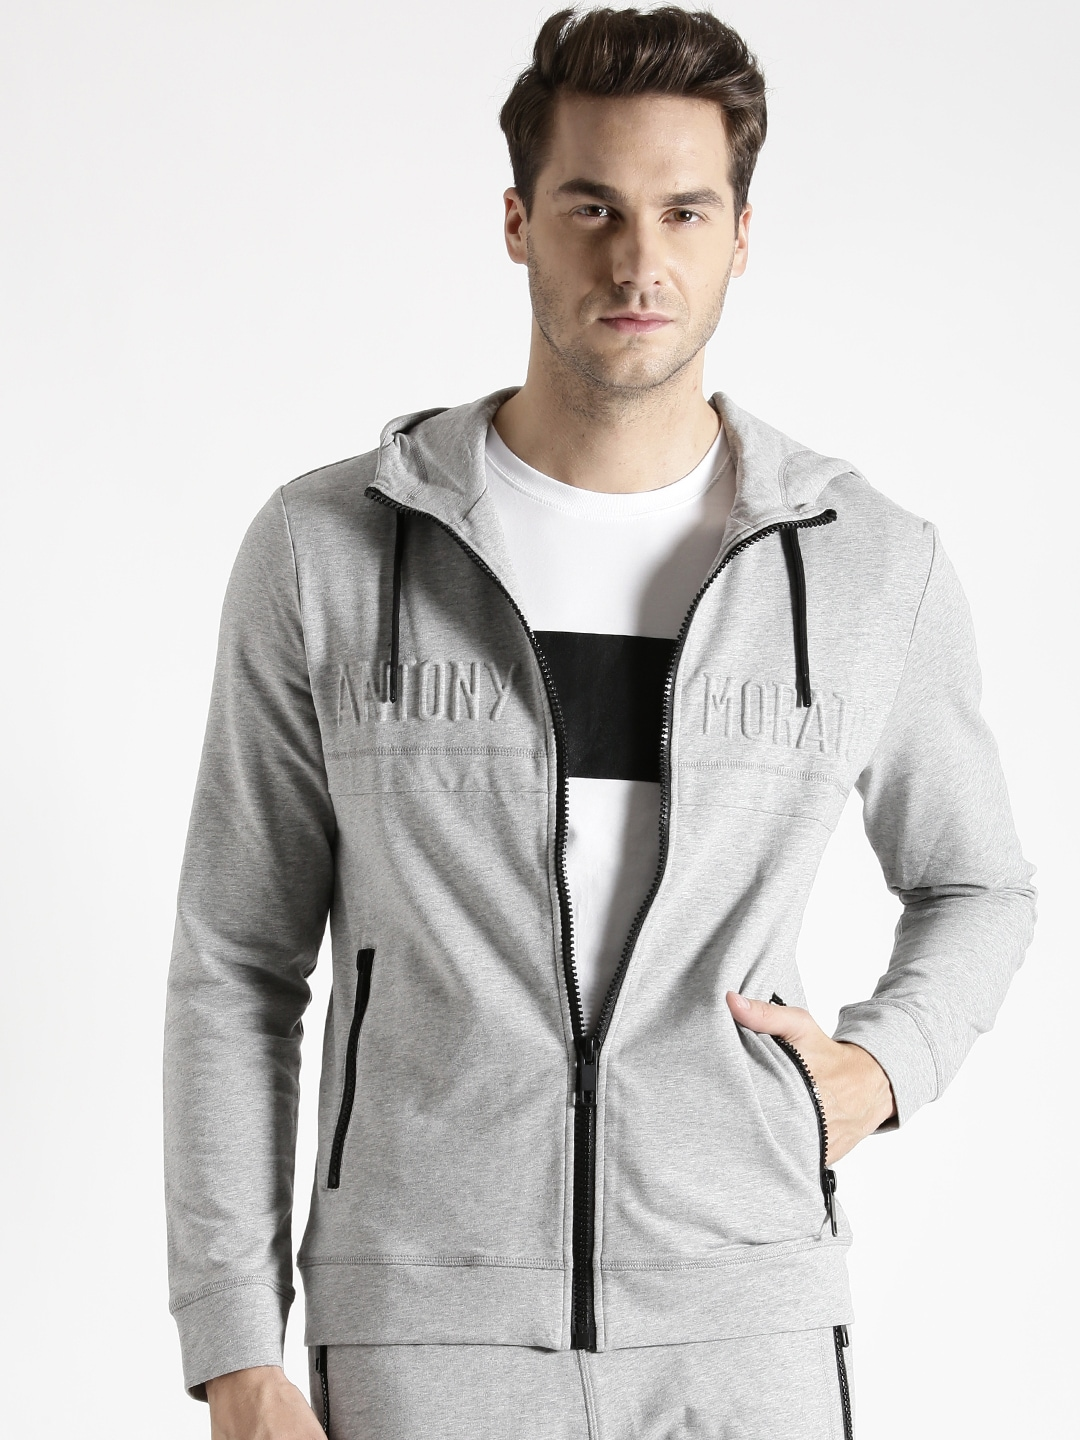 official cozy fresh cheap Antony morato mmfl00261-9013 Grey Melange Hooded ...